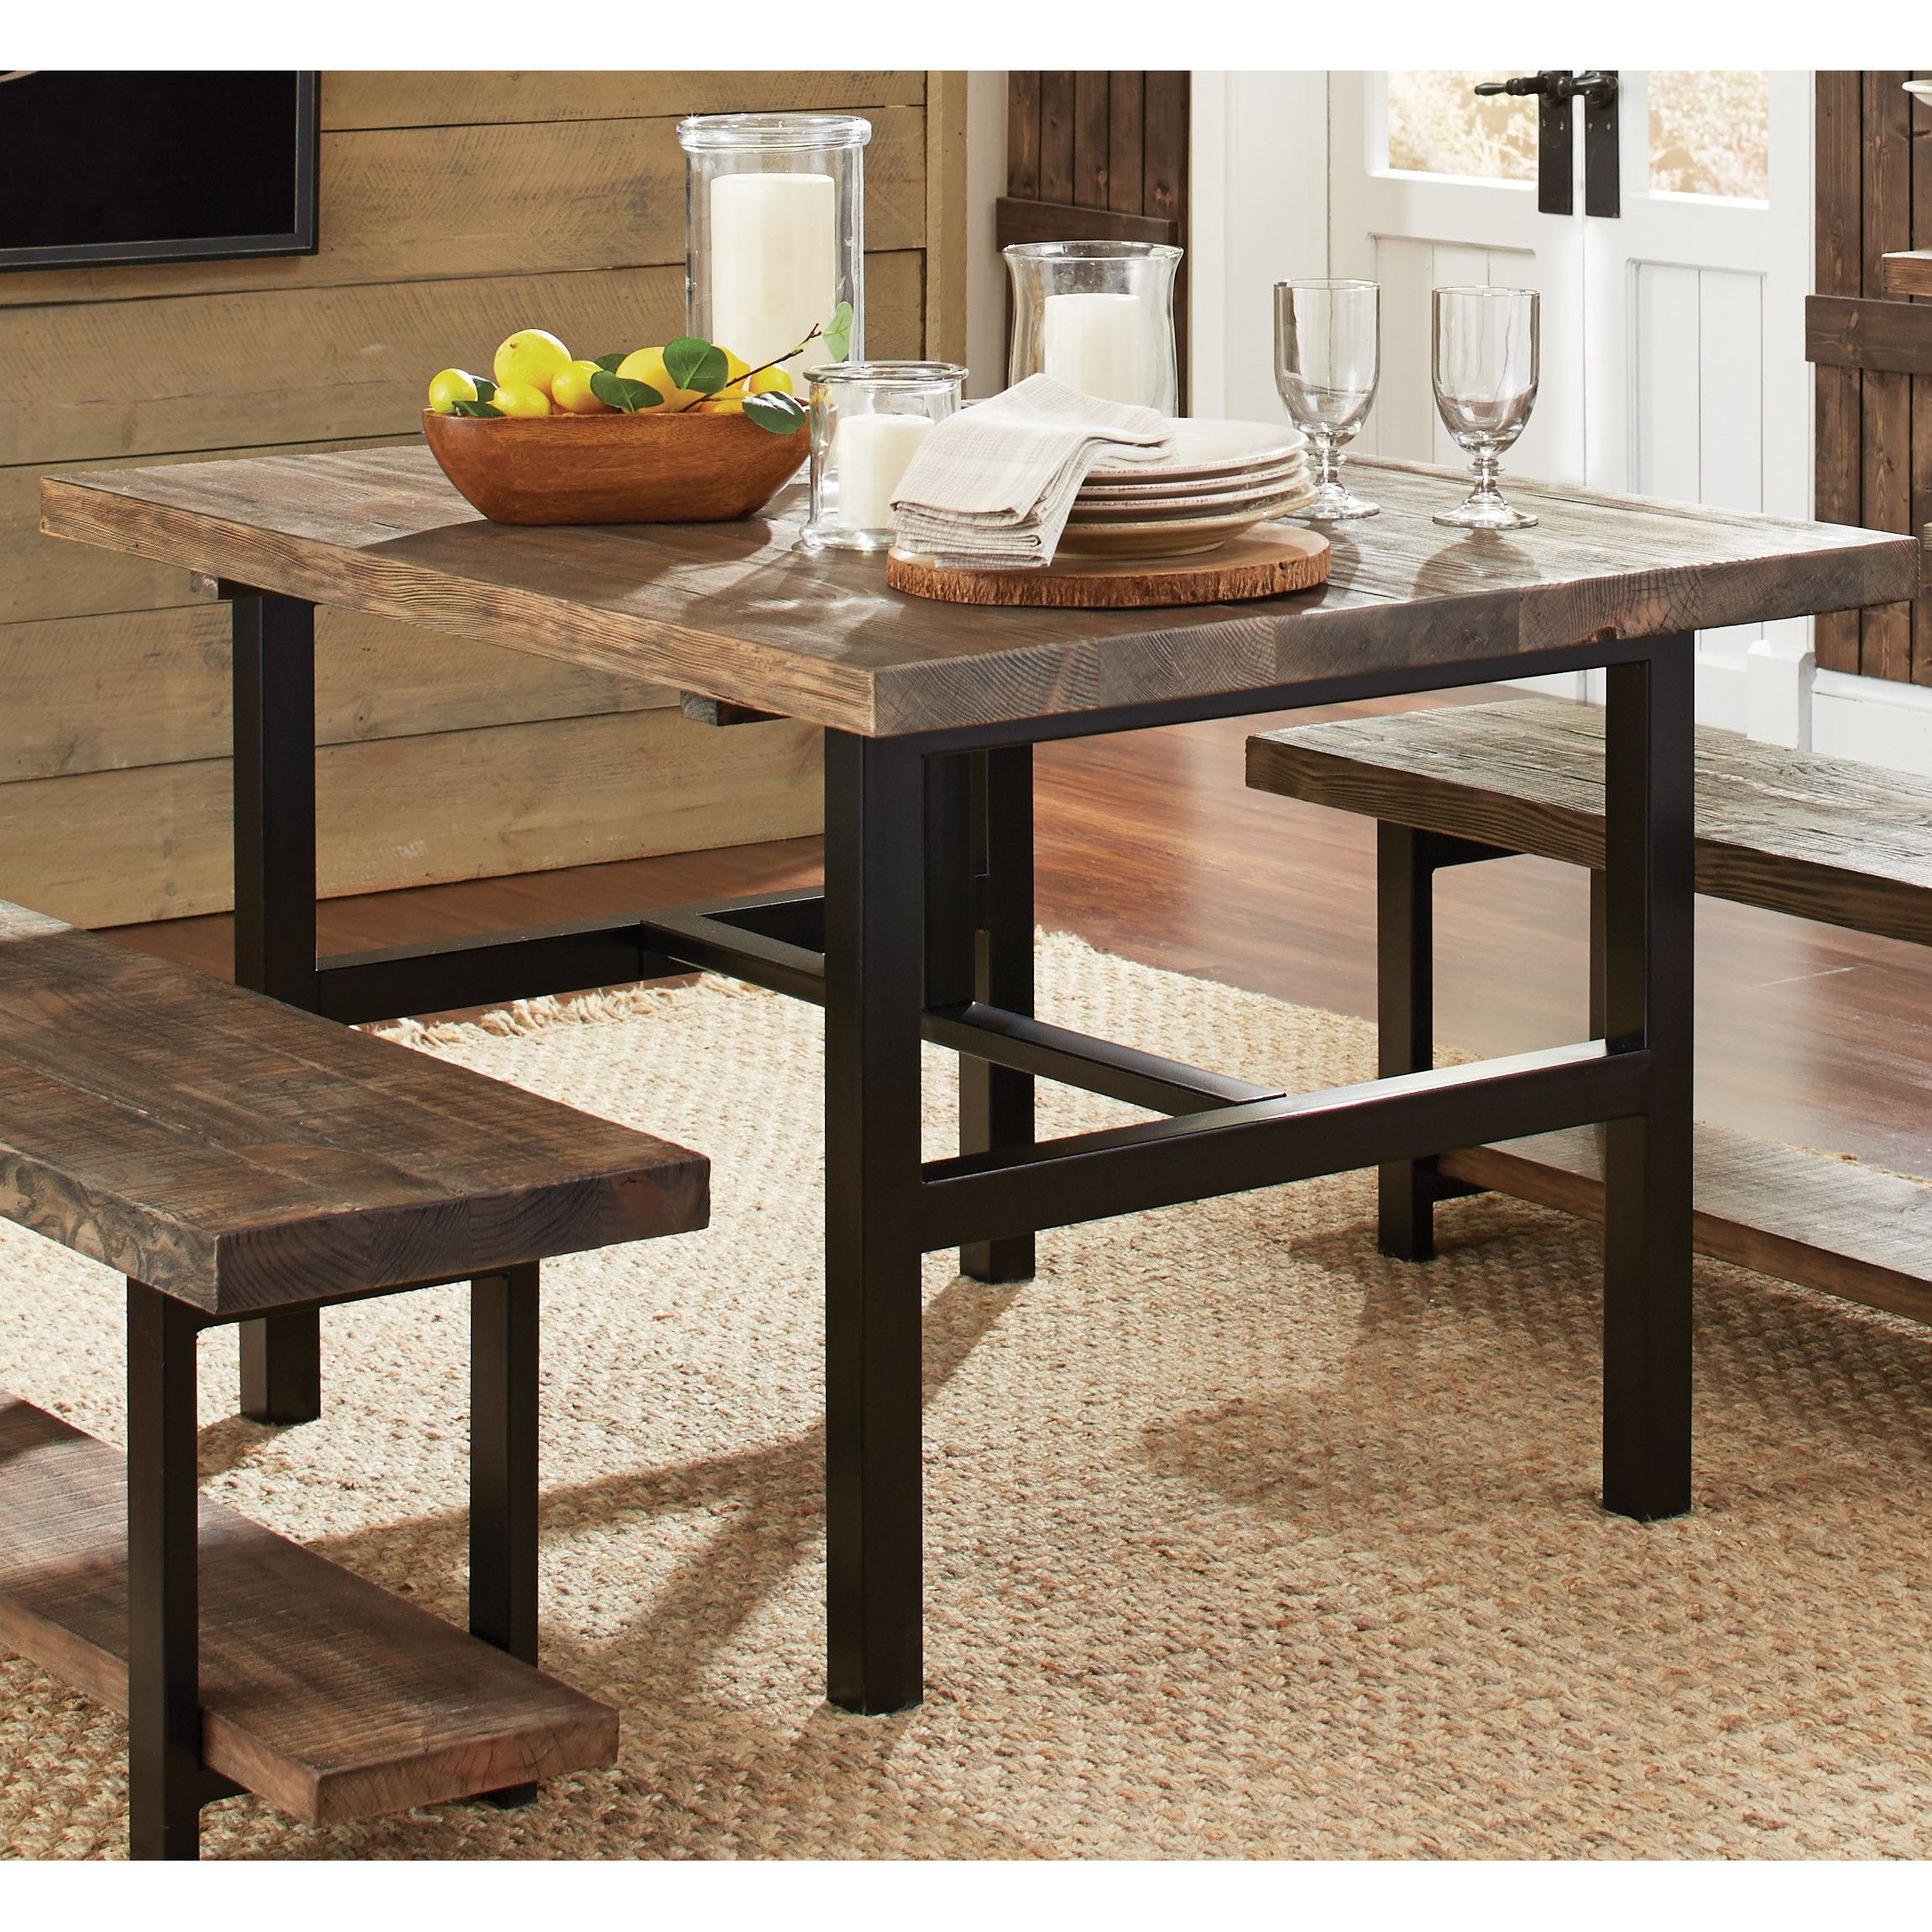 Loon Peak Reg Somers Dining Table Wood Dining Table Reclaimed